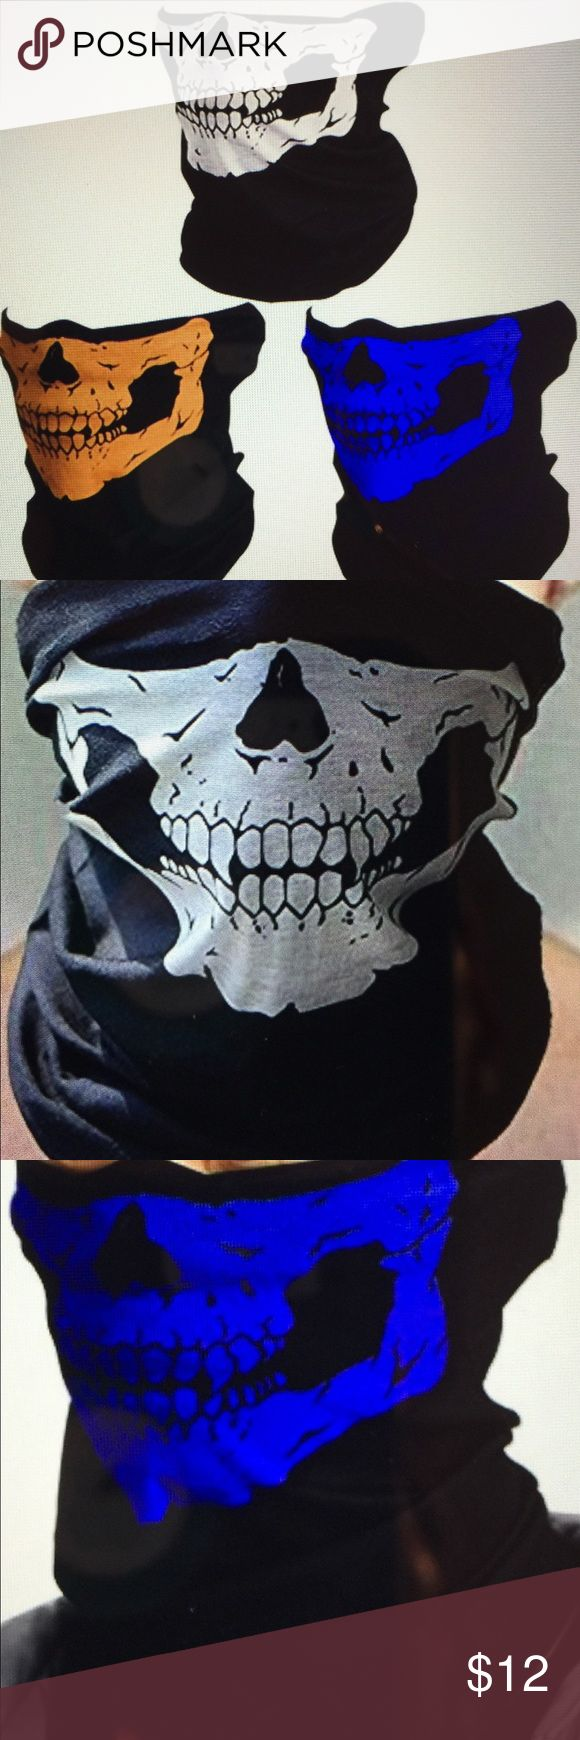 Skull ski face masks set of 3. New in packages. Fun facial covering for men or women. Great for hiking, motorcyclist, snowboarding, skiing, and other activities to keep your face blocked from the elements. Use for a costume or bandana, hair band, etc.  New in packages. Other